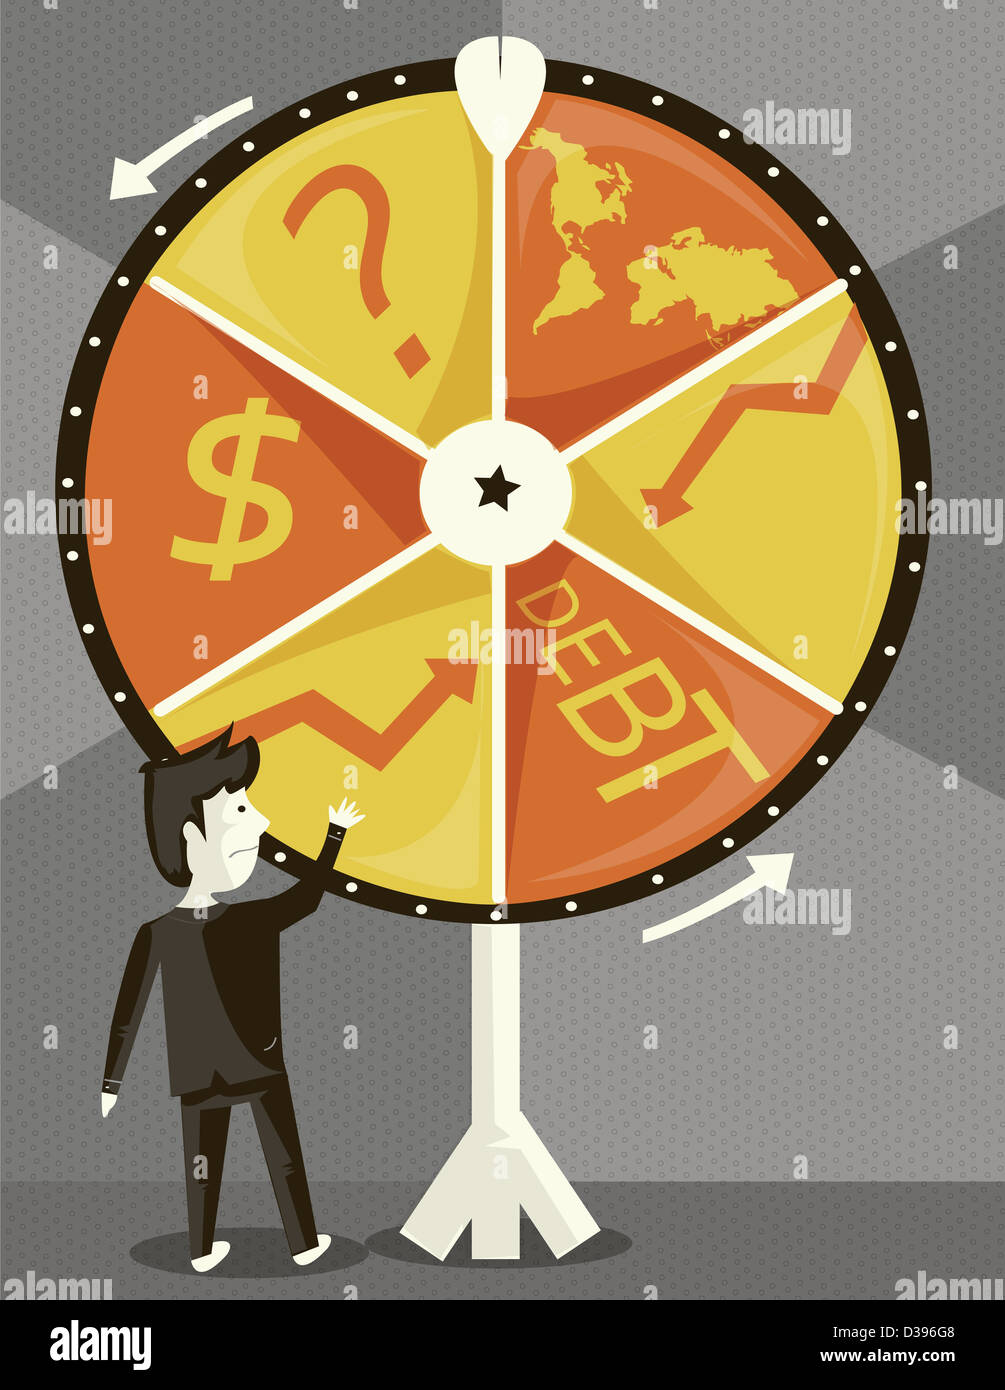 Businessman with spinning wheel of business cycle trying his luck - Stock Image